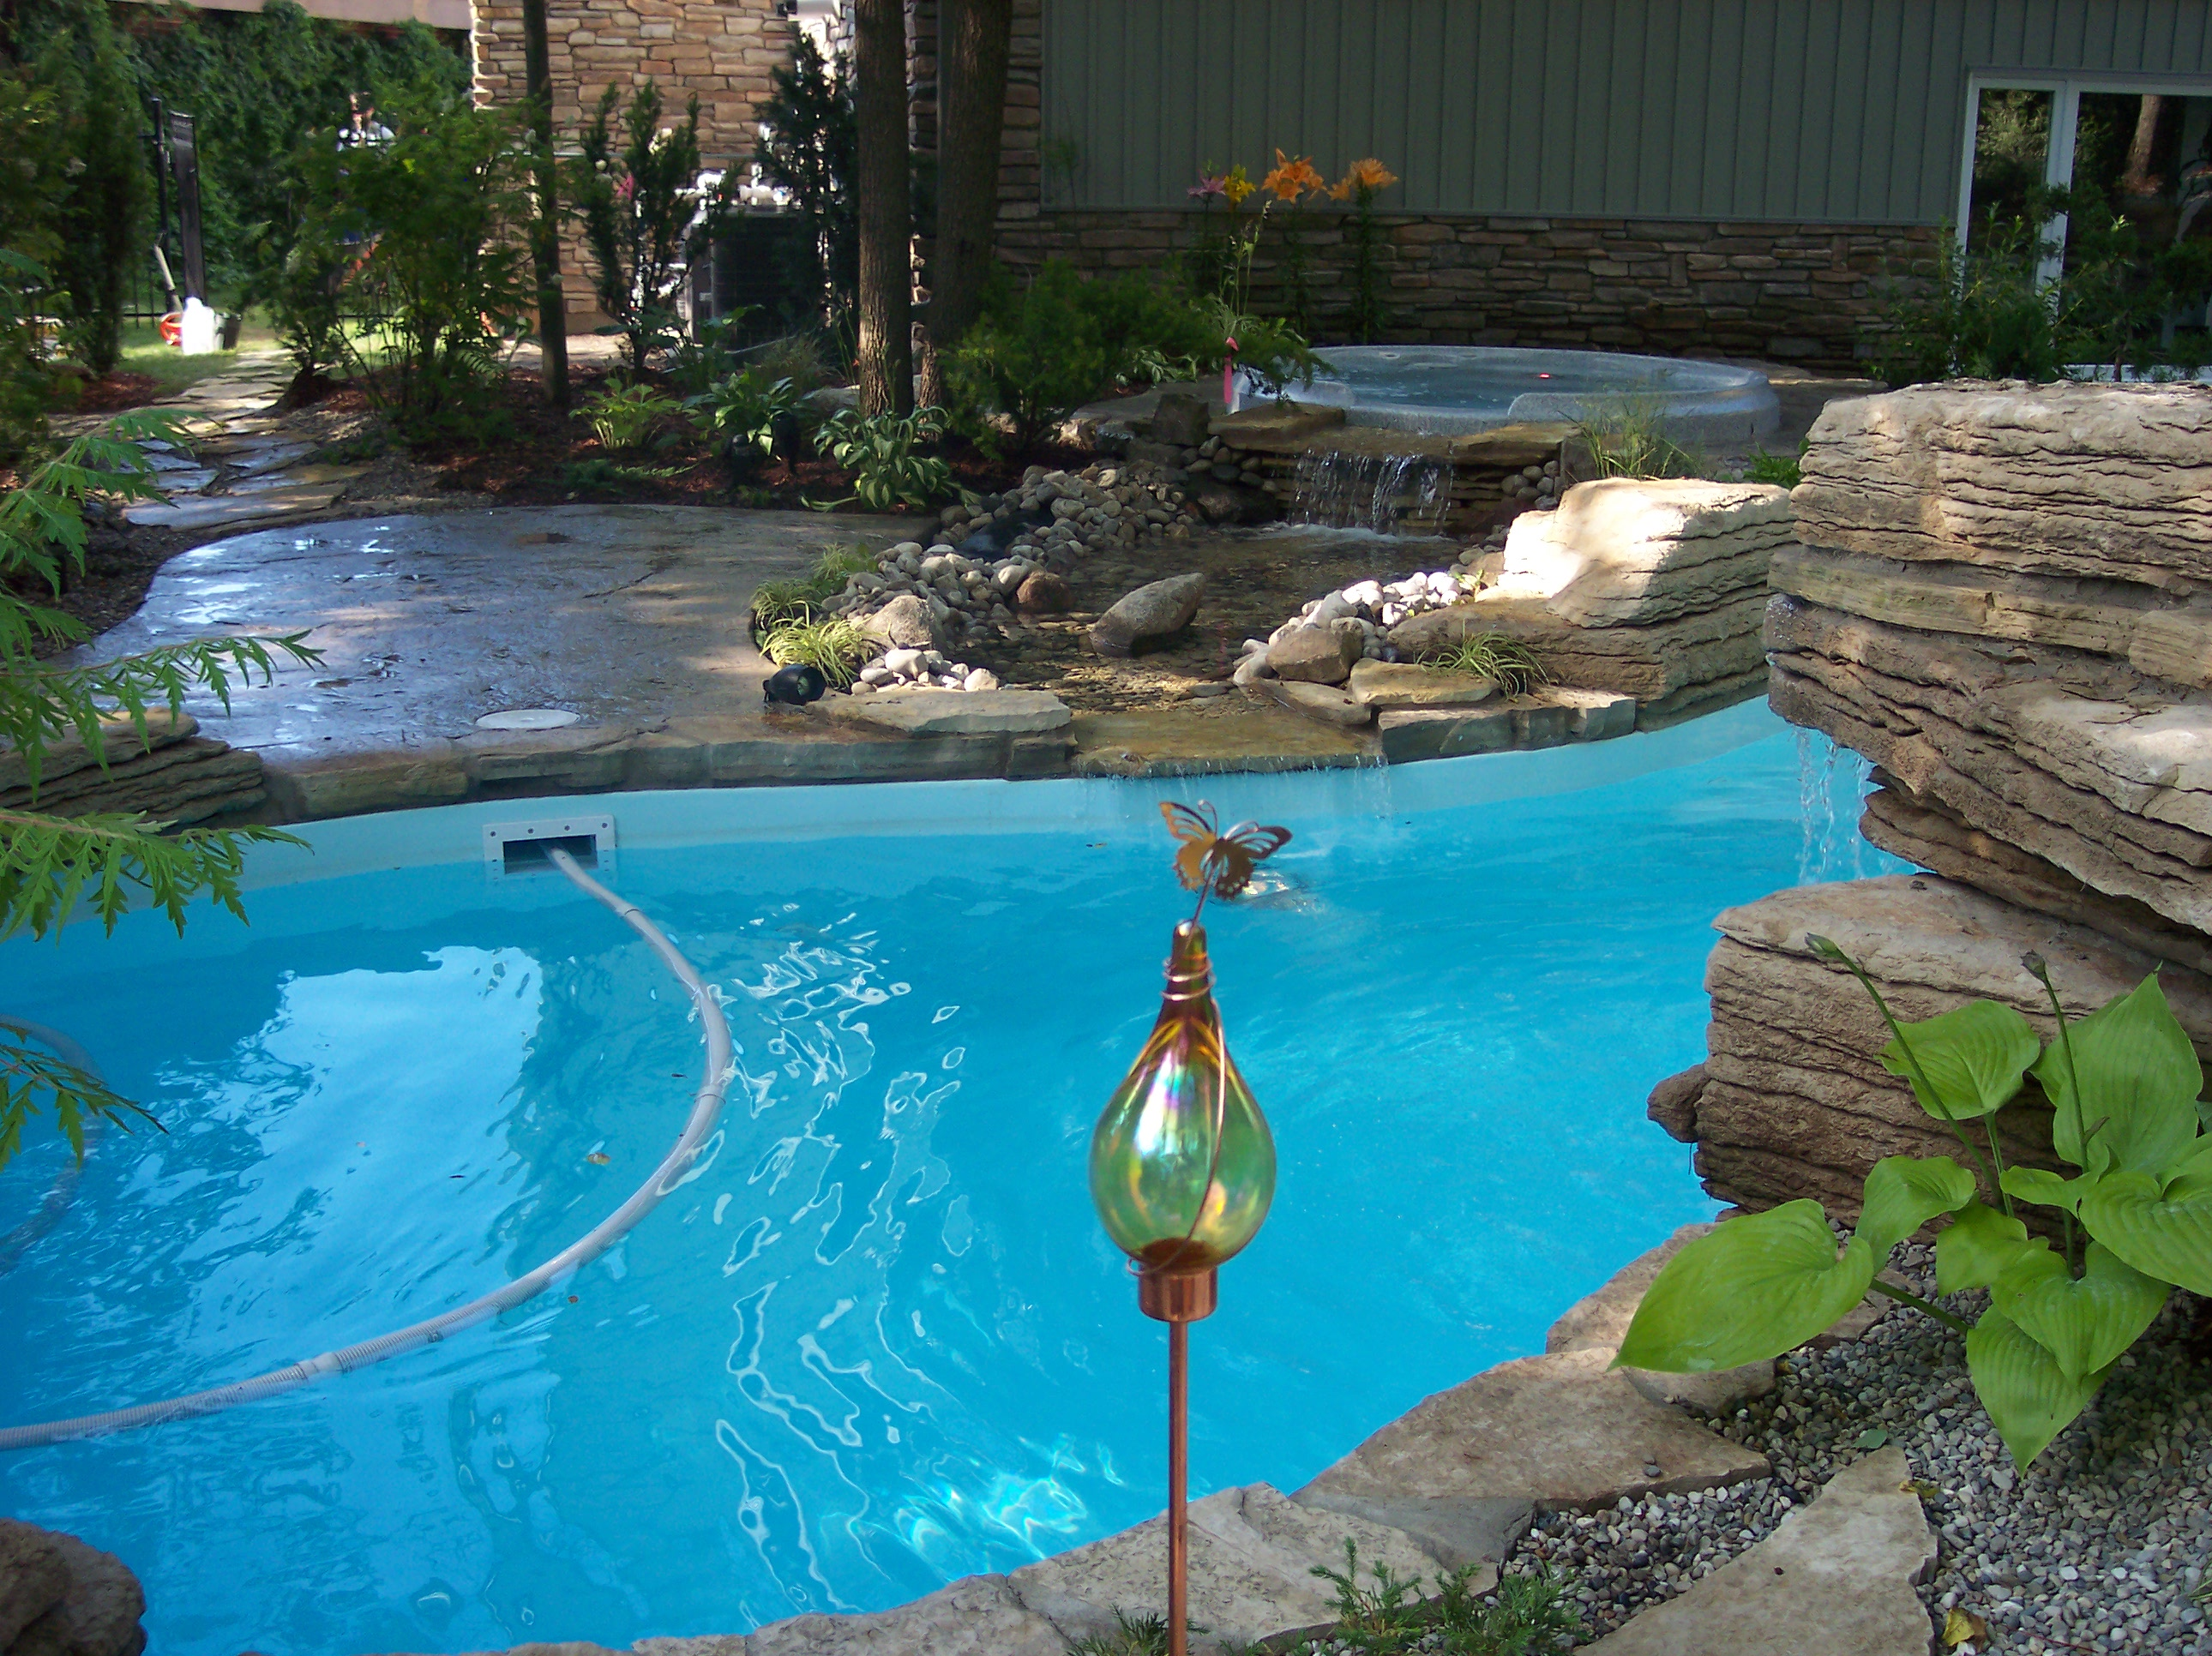 inground pools with waterfalls and hot tubs. Pools, Hot Tubs, Spas, Cambridge, Ontario, Waterfalls, Water Features, Custom Pools,pool Liners, Inground On-ground Above Ground Vinyl, Pools With Waterfalls And Tubs